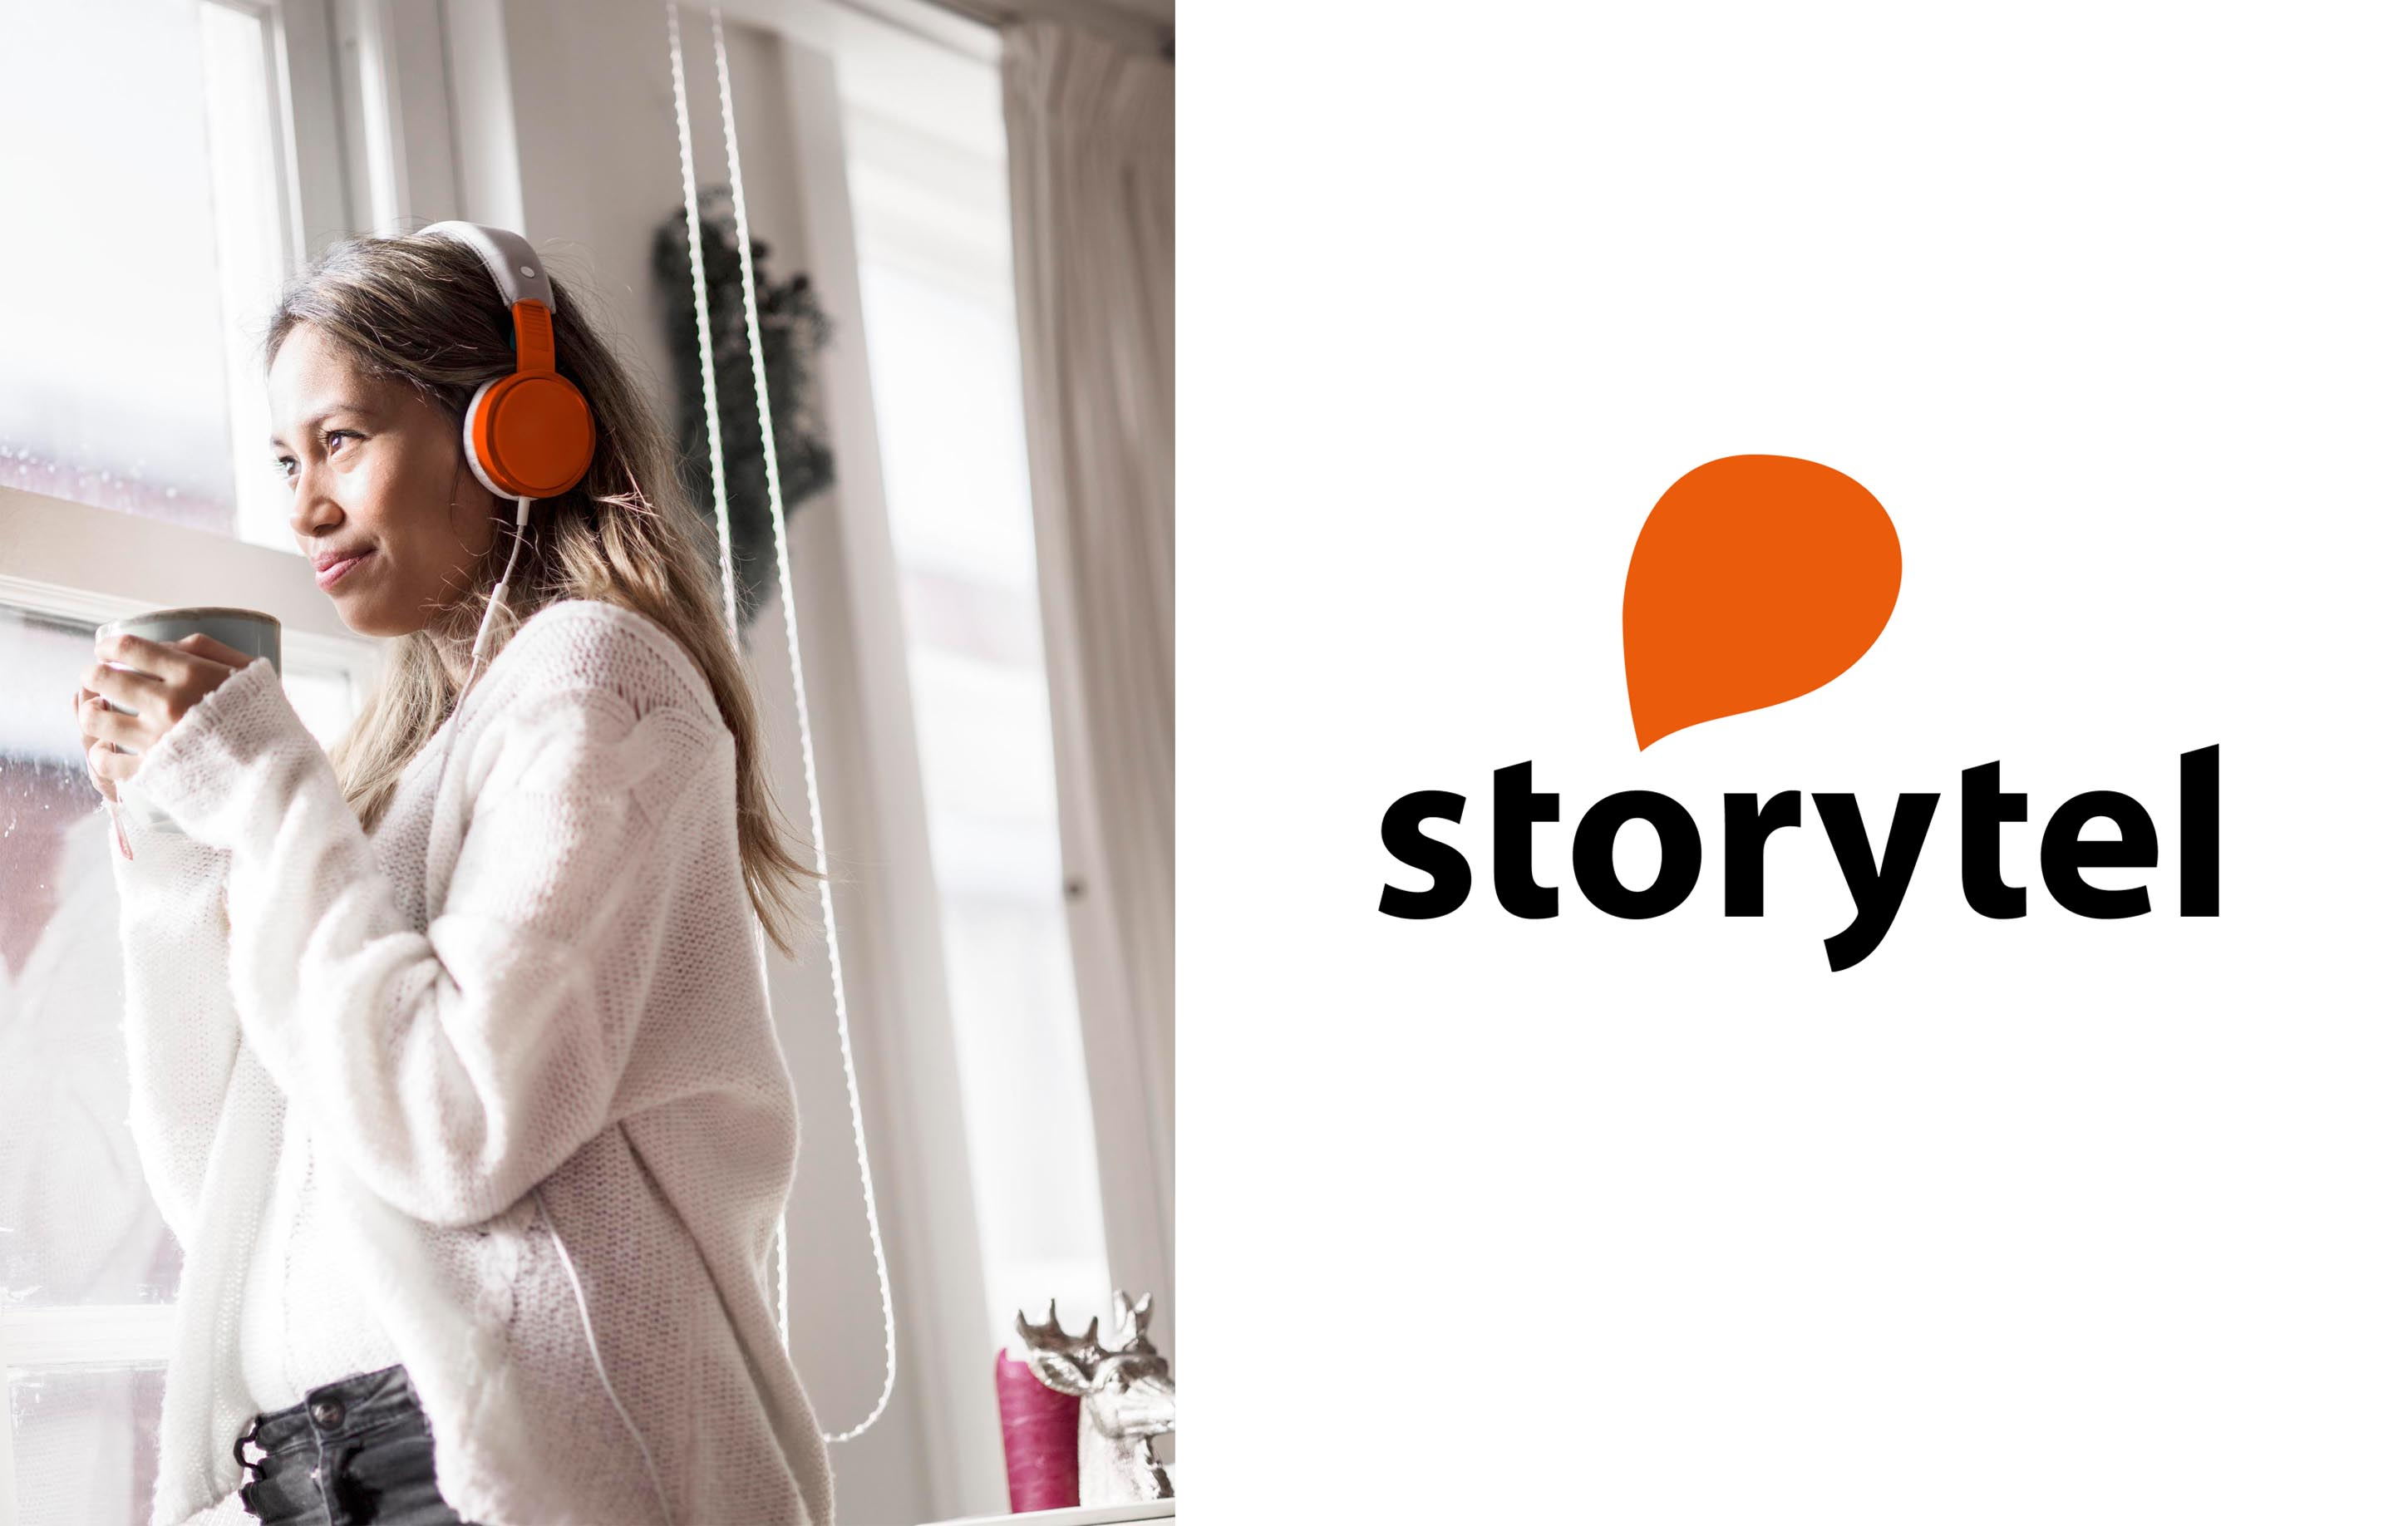 Storytel 1 - Daily Cappuccino - Lifestyle Blog